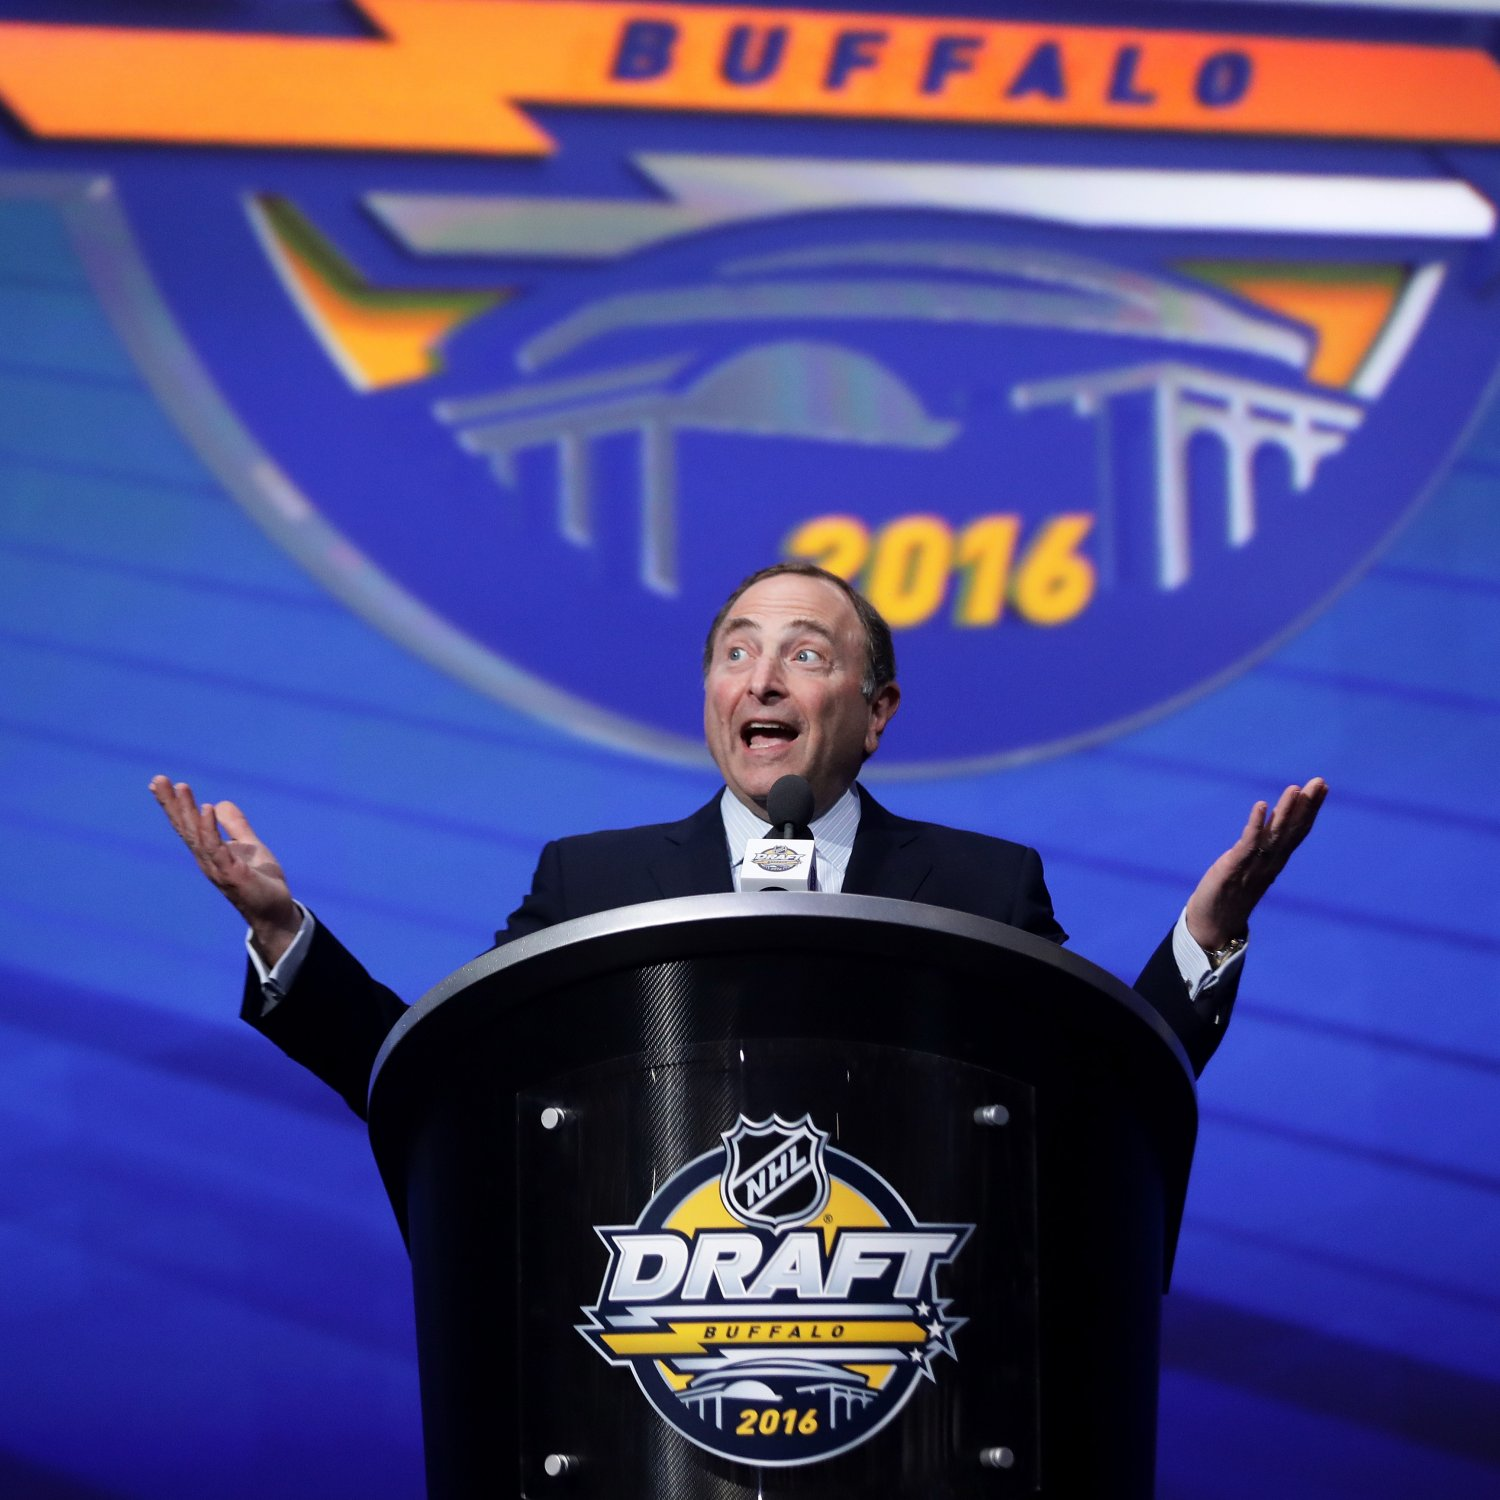 NHL Draft 2016: Day 2 TV, Live-Stream Schedule, Order And